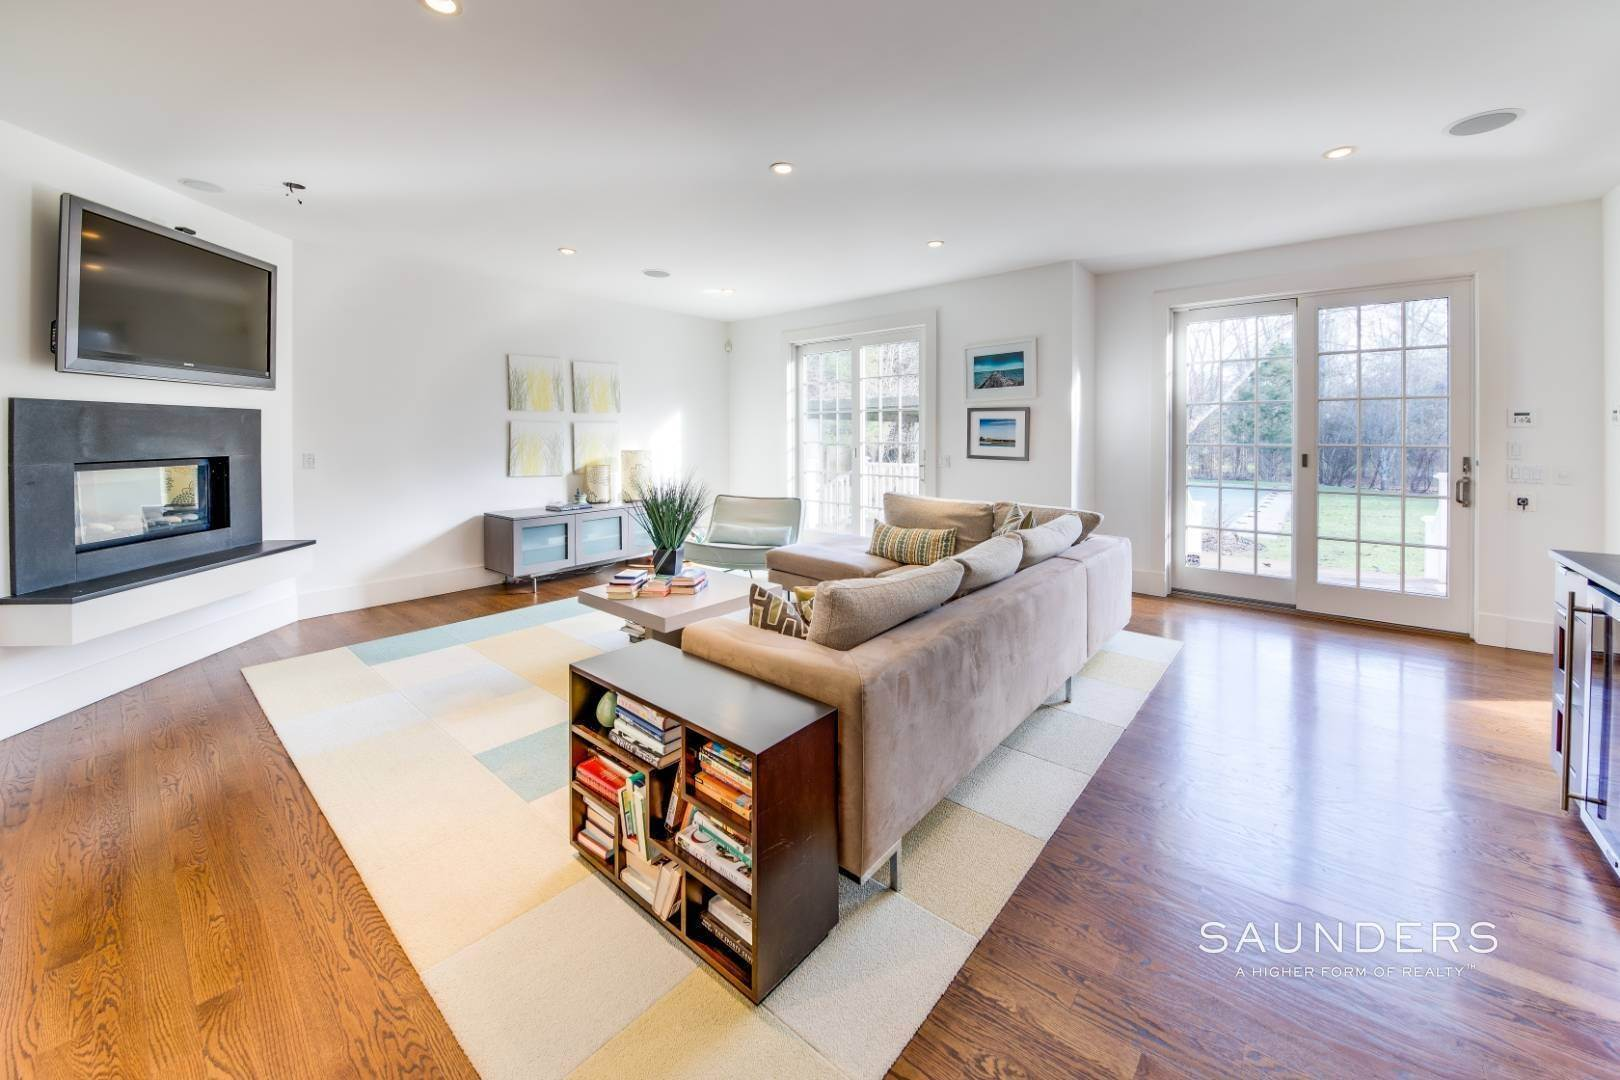 10. Single Family Homes for Sale at Wainscott South Traditional Near Beach Lane 10 Merriwood Drive, Wainscott, East Hampton Town, NY 11975